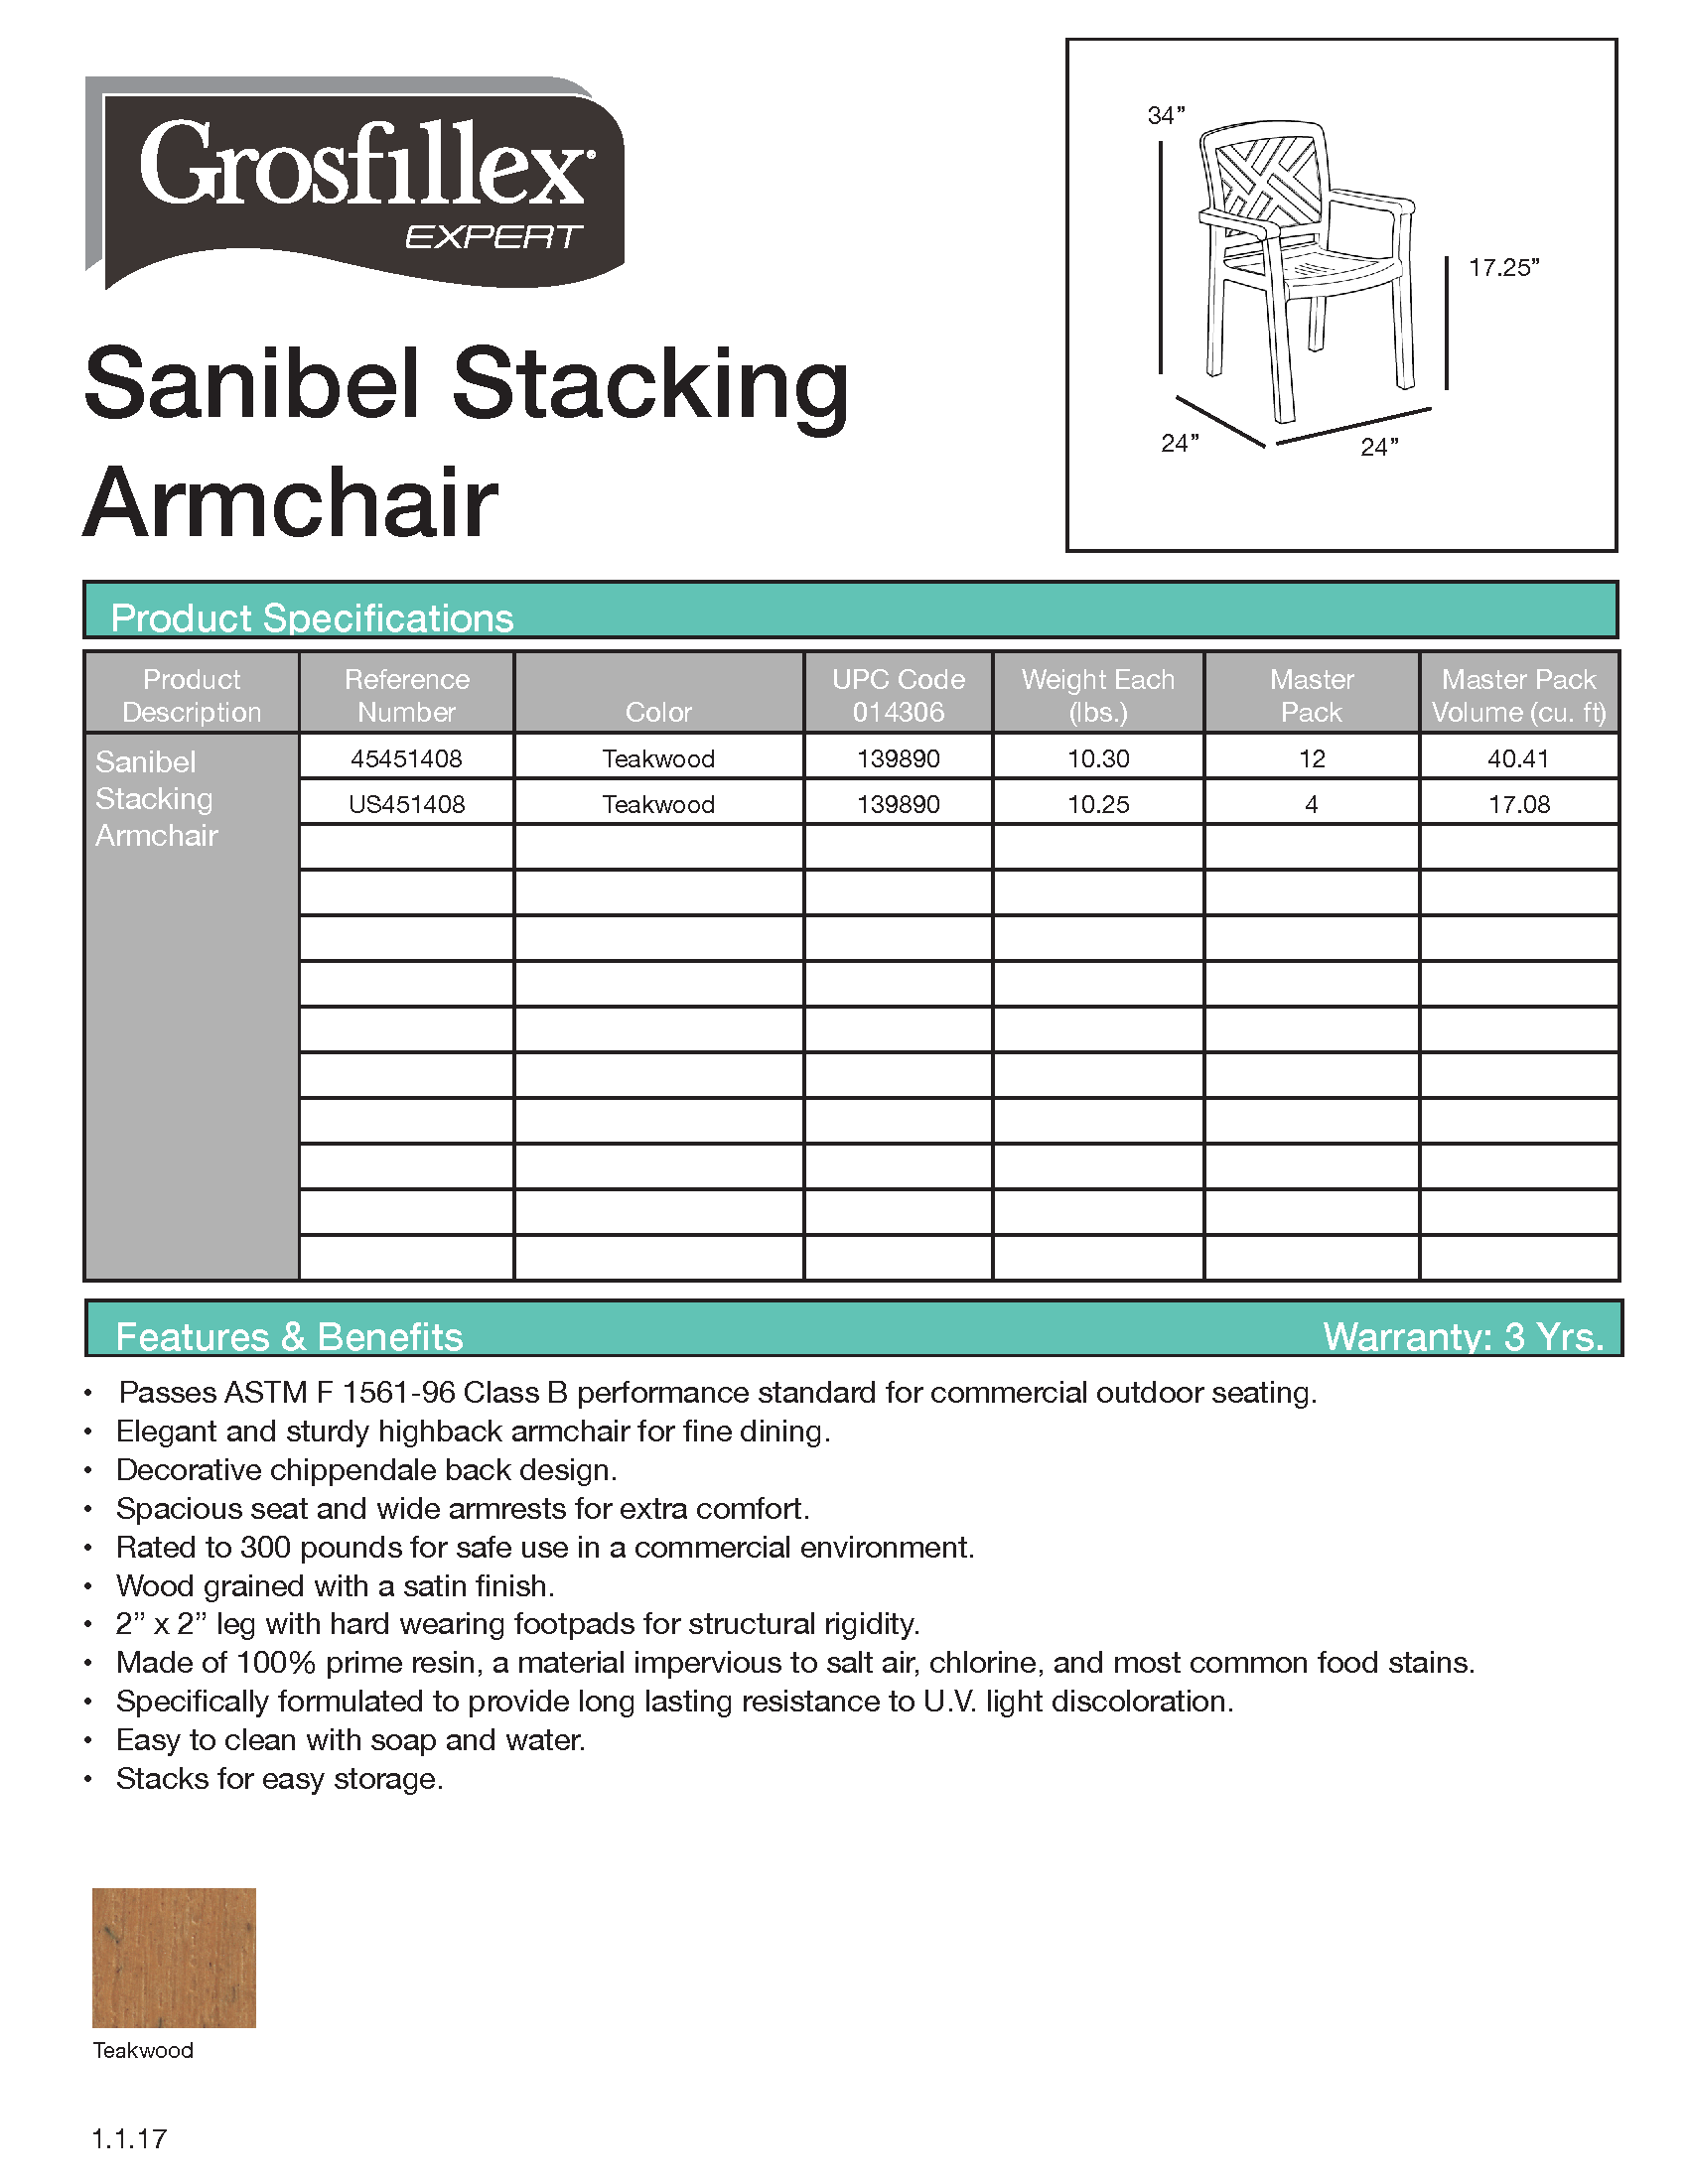 Sanibel Armchair